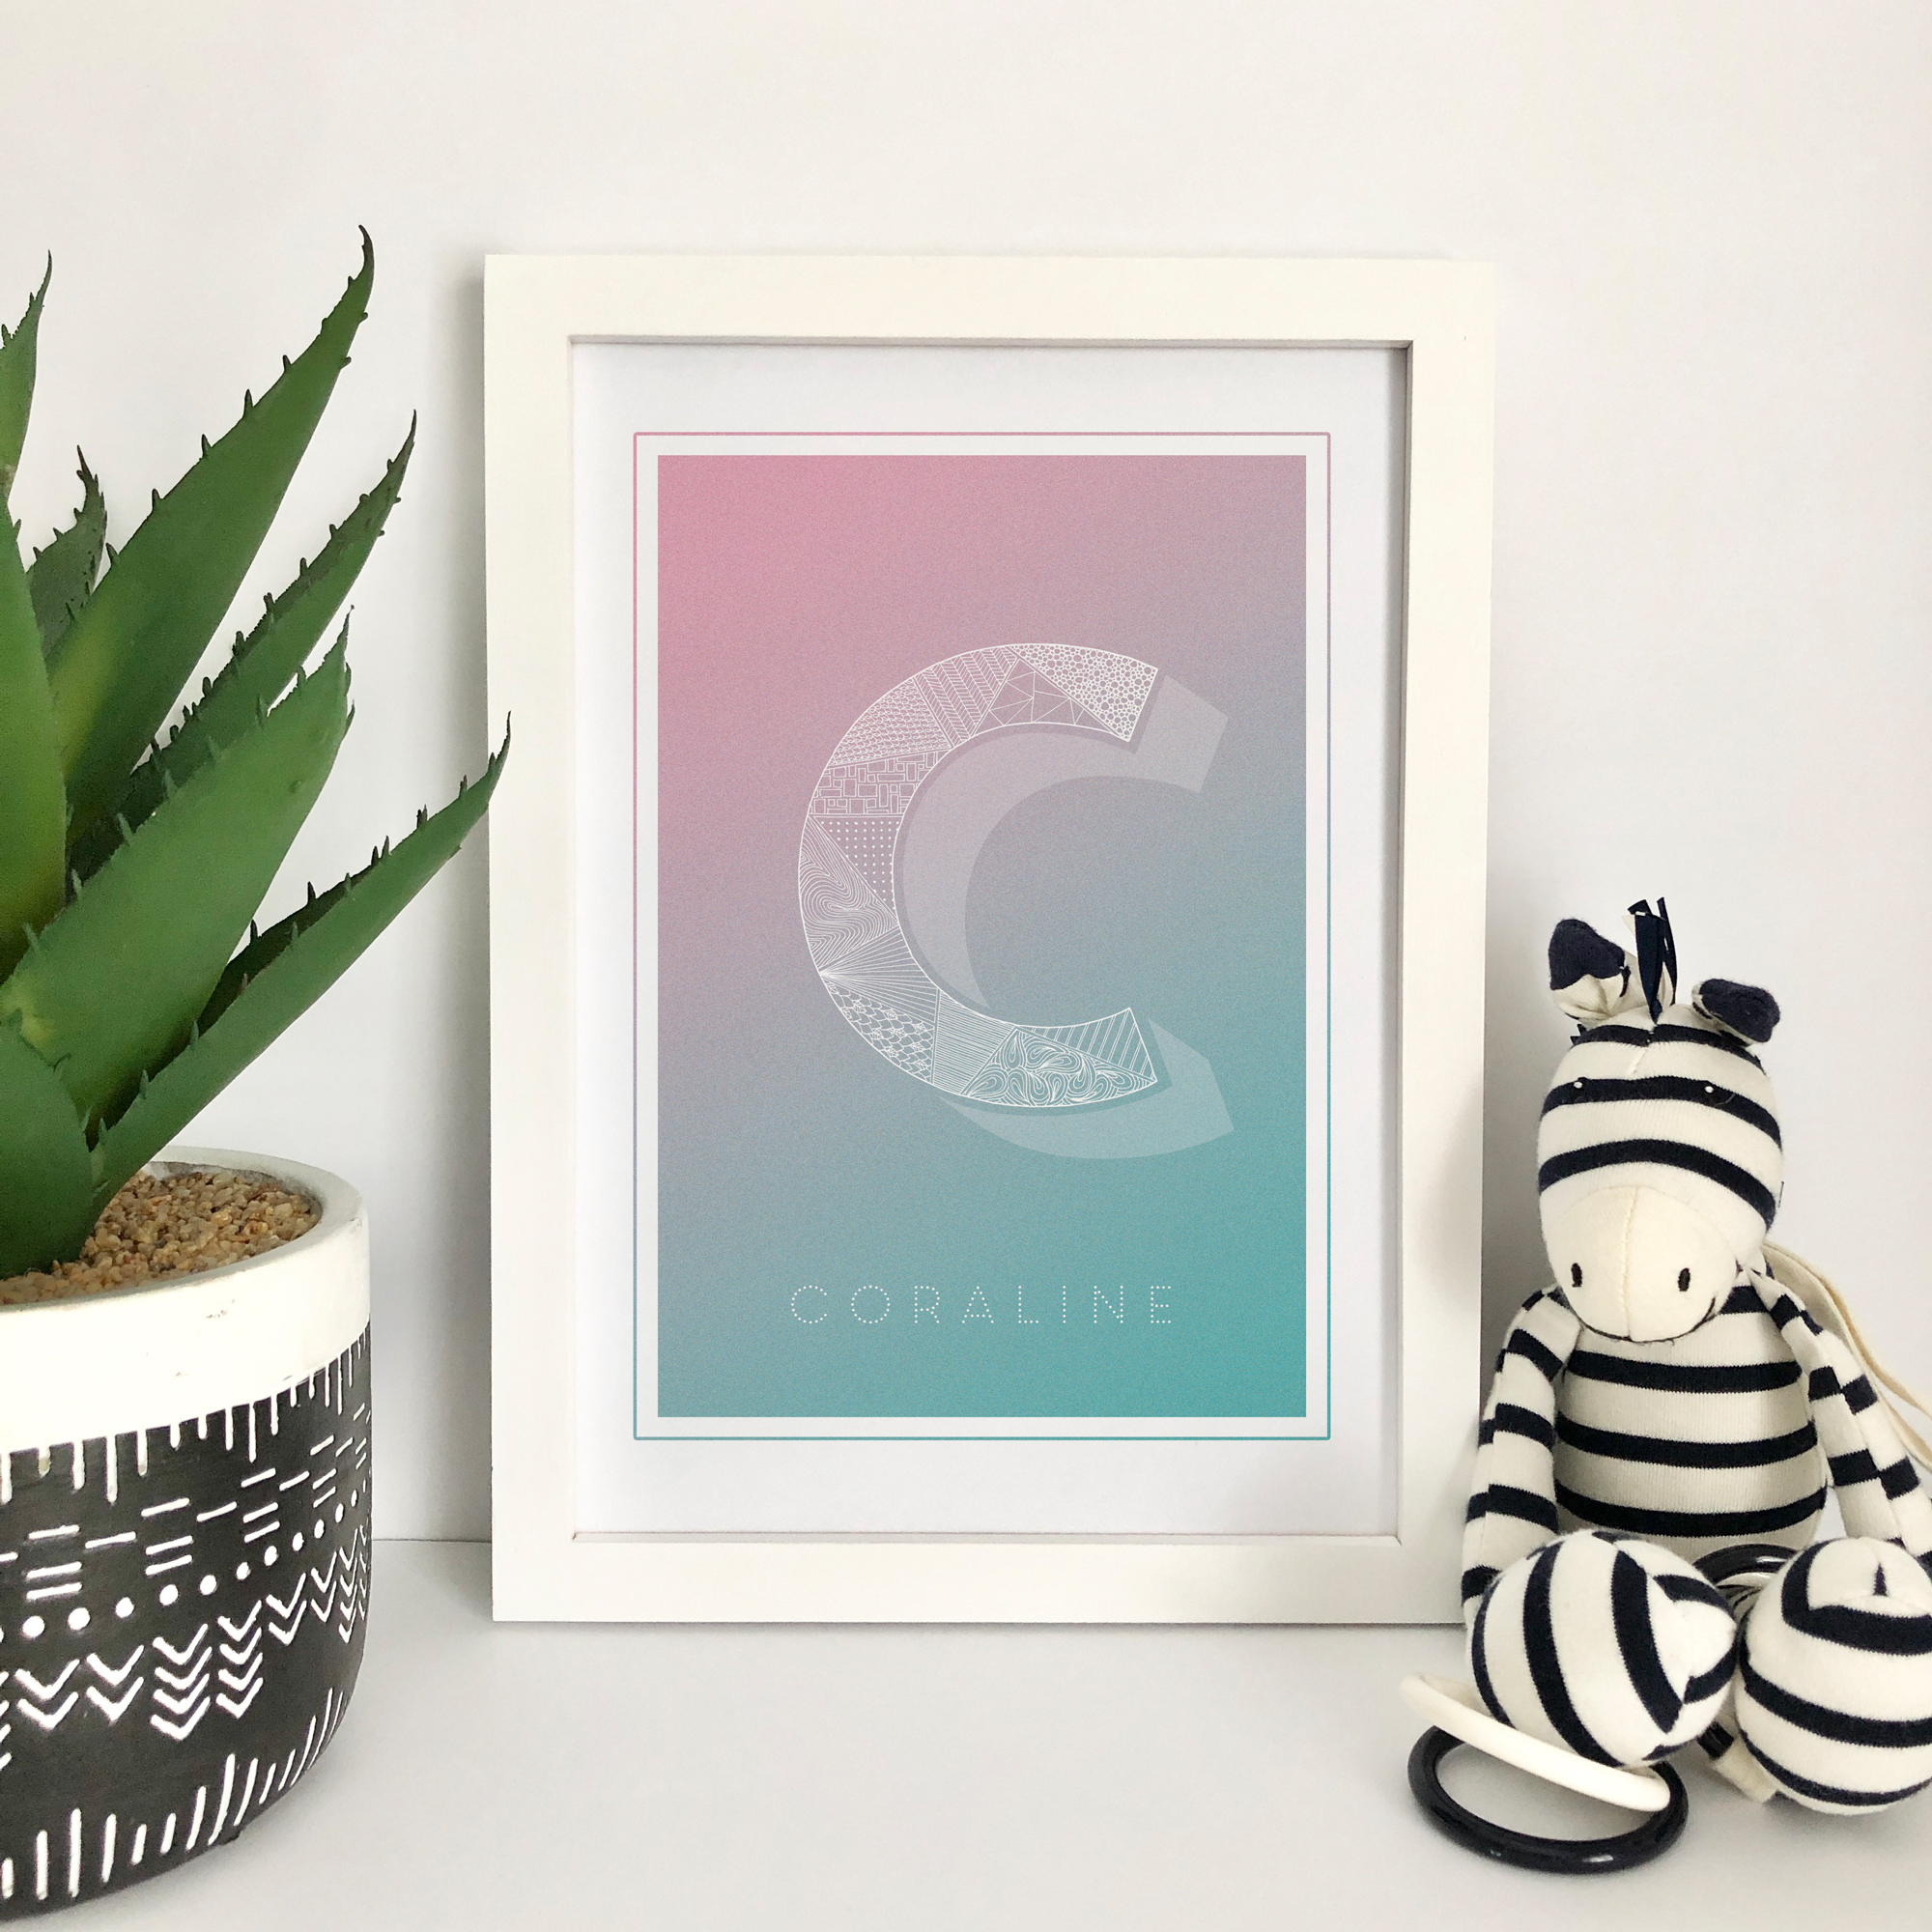 Personalised illustrated initial art print, featuring zentangle inspired patterns and gorgeous soft pastel shade backgrounds. A-Z available.